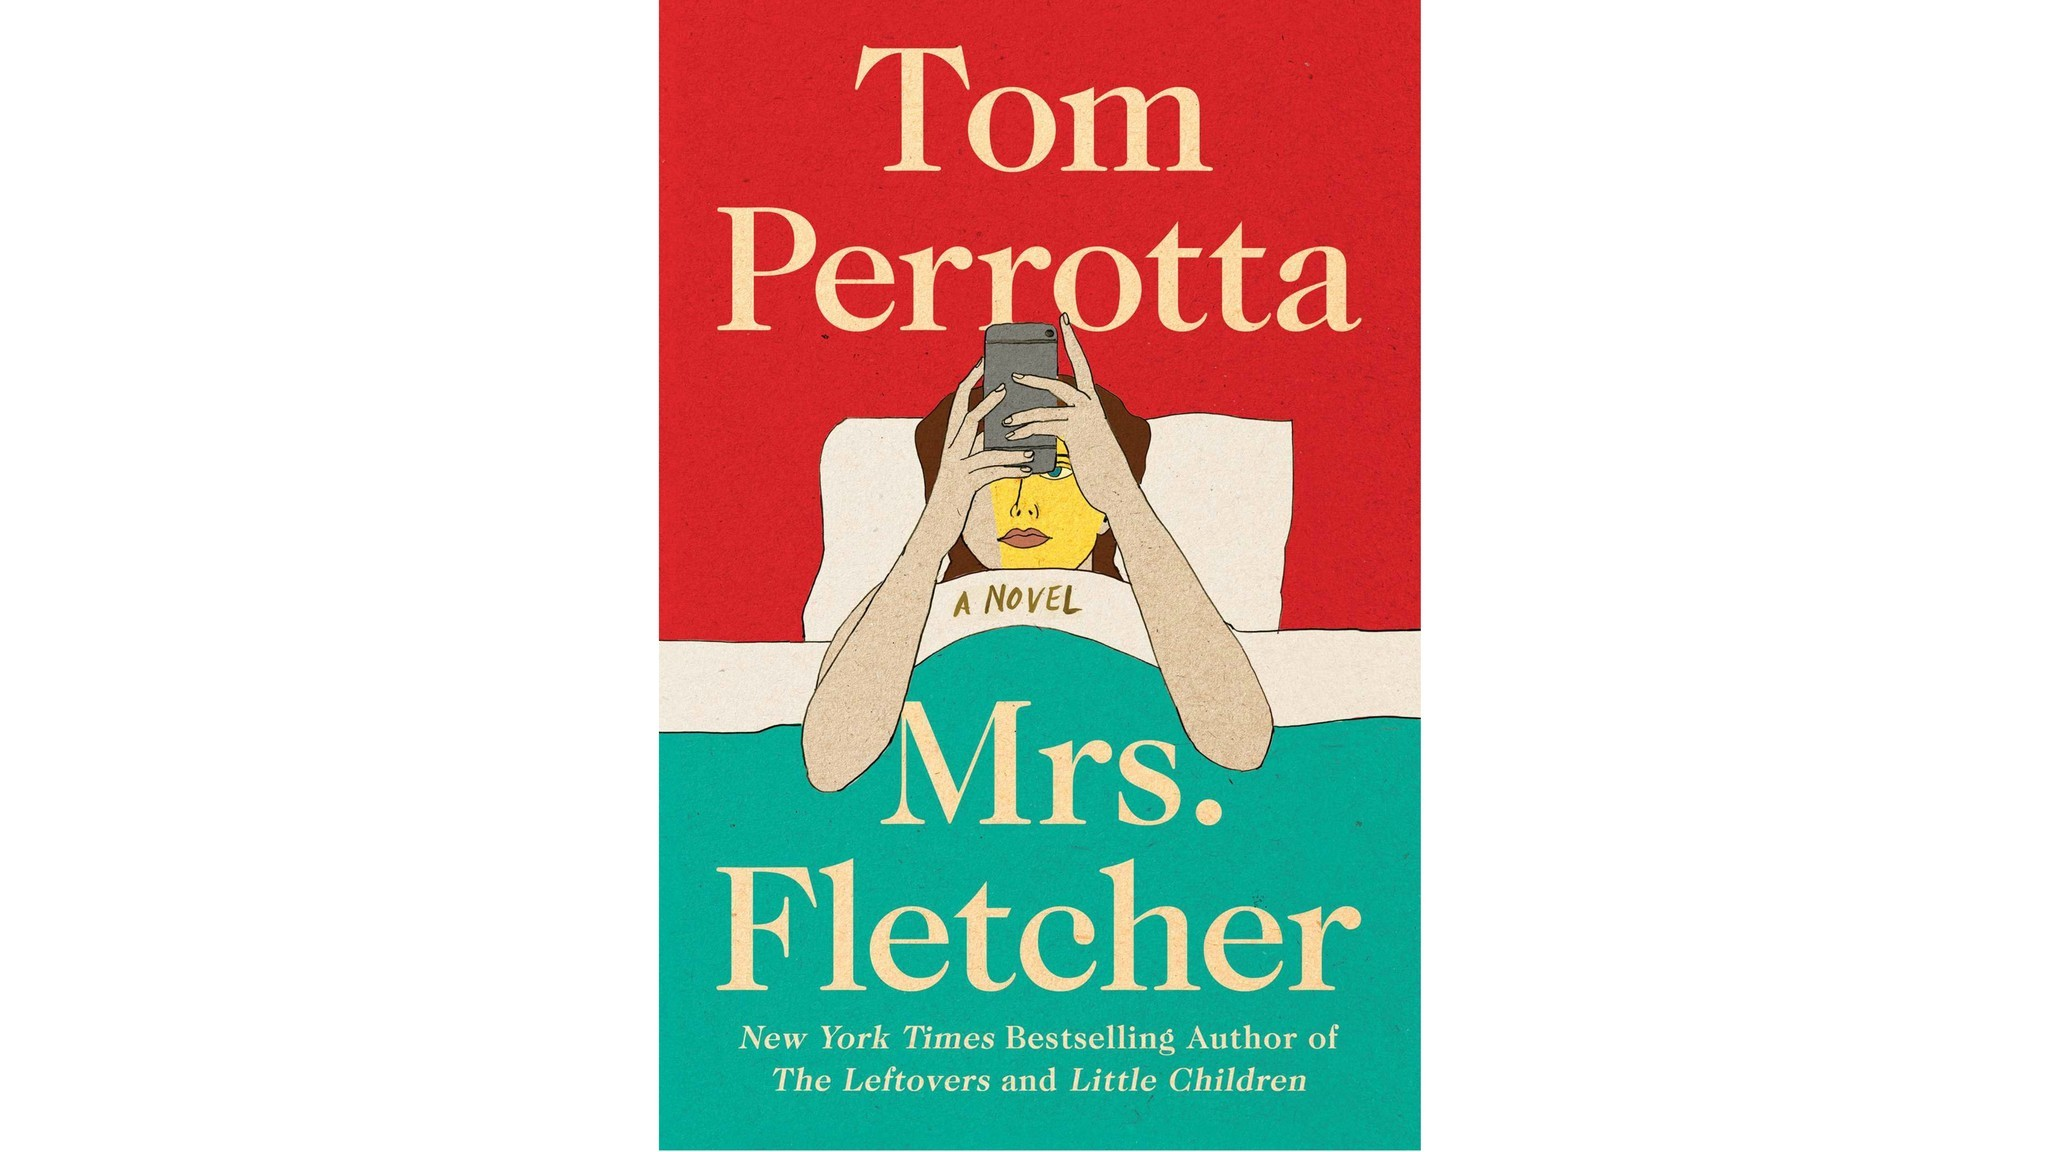 Tom Perrotta's 'Mrs. Fletcher'.